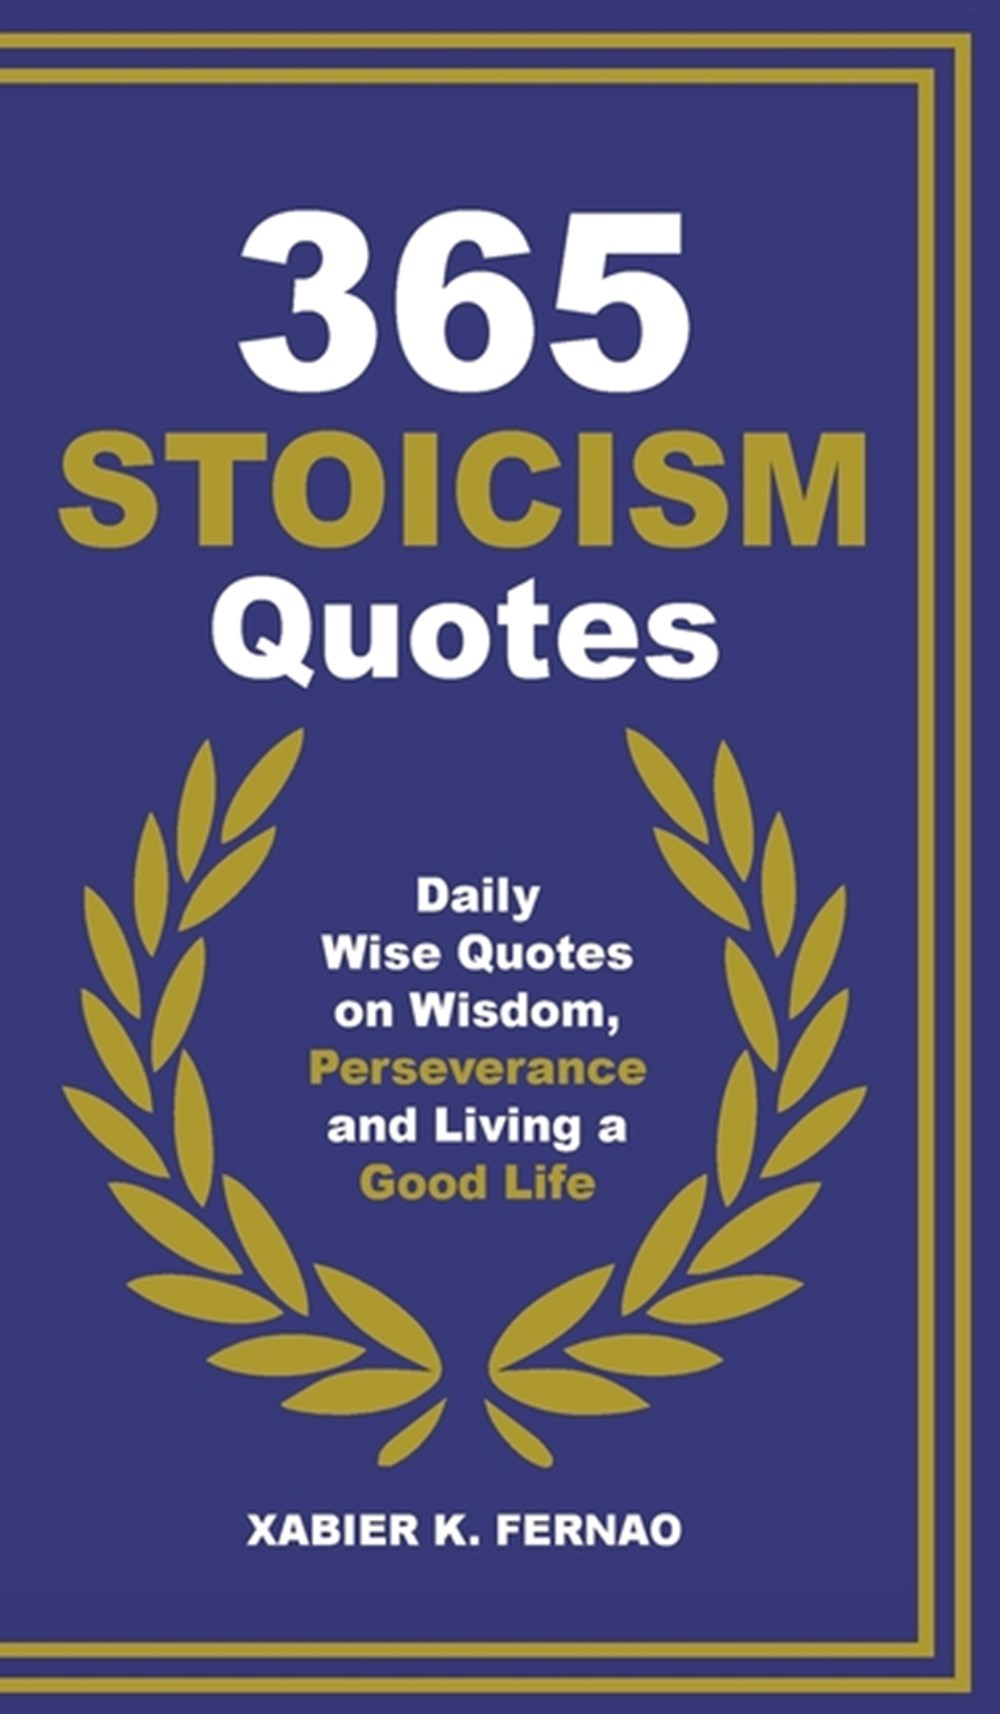 365 Stoicism Quotes Daily Stoic Philosophies, Teachings and Disciplines for a Stronger Mind